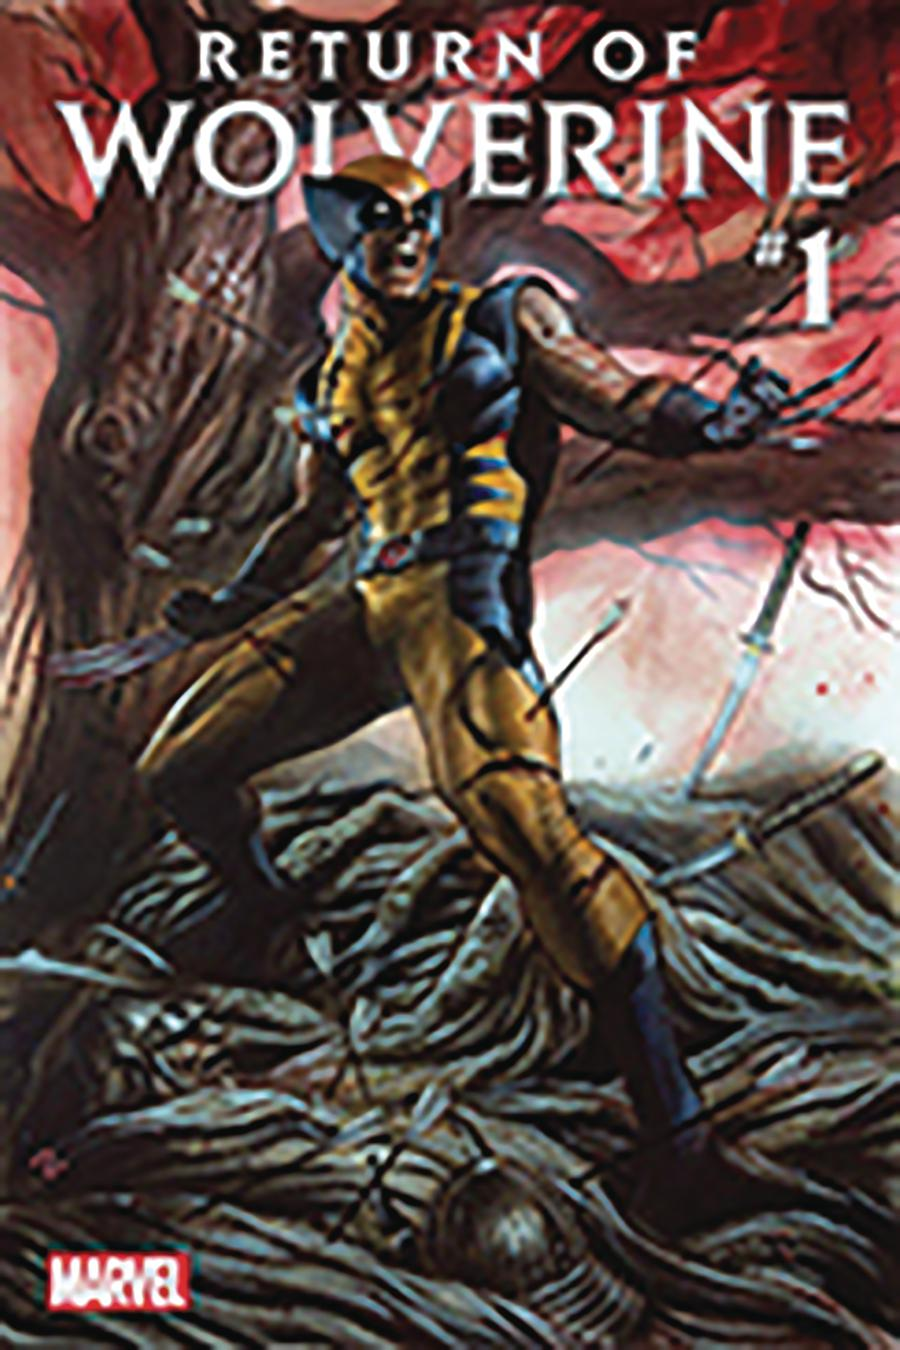 Return Of Wolverine #1 Cover Z-D DF CSA Exclusive Adi Granov Variant Cover